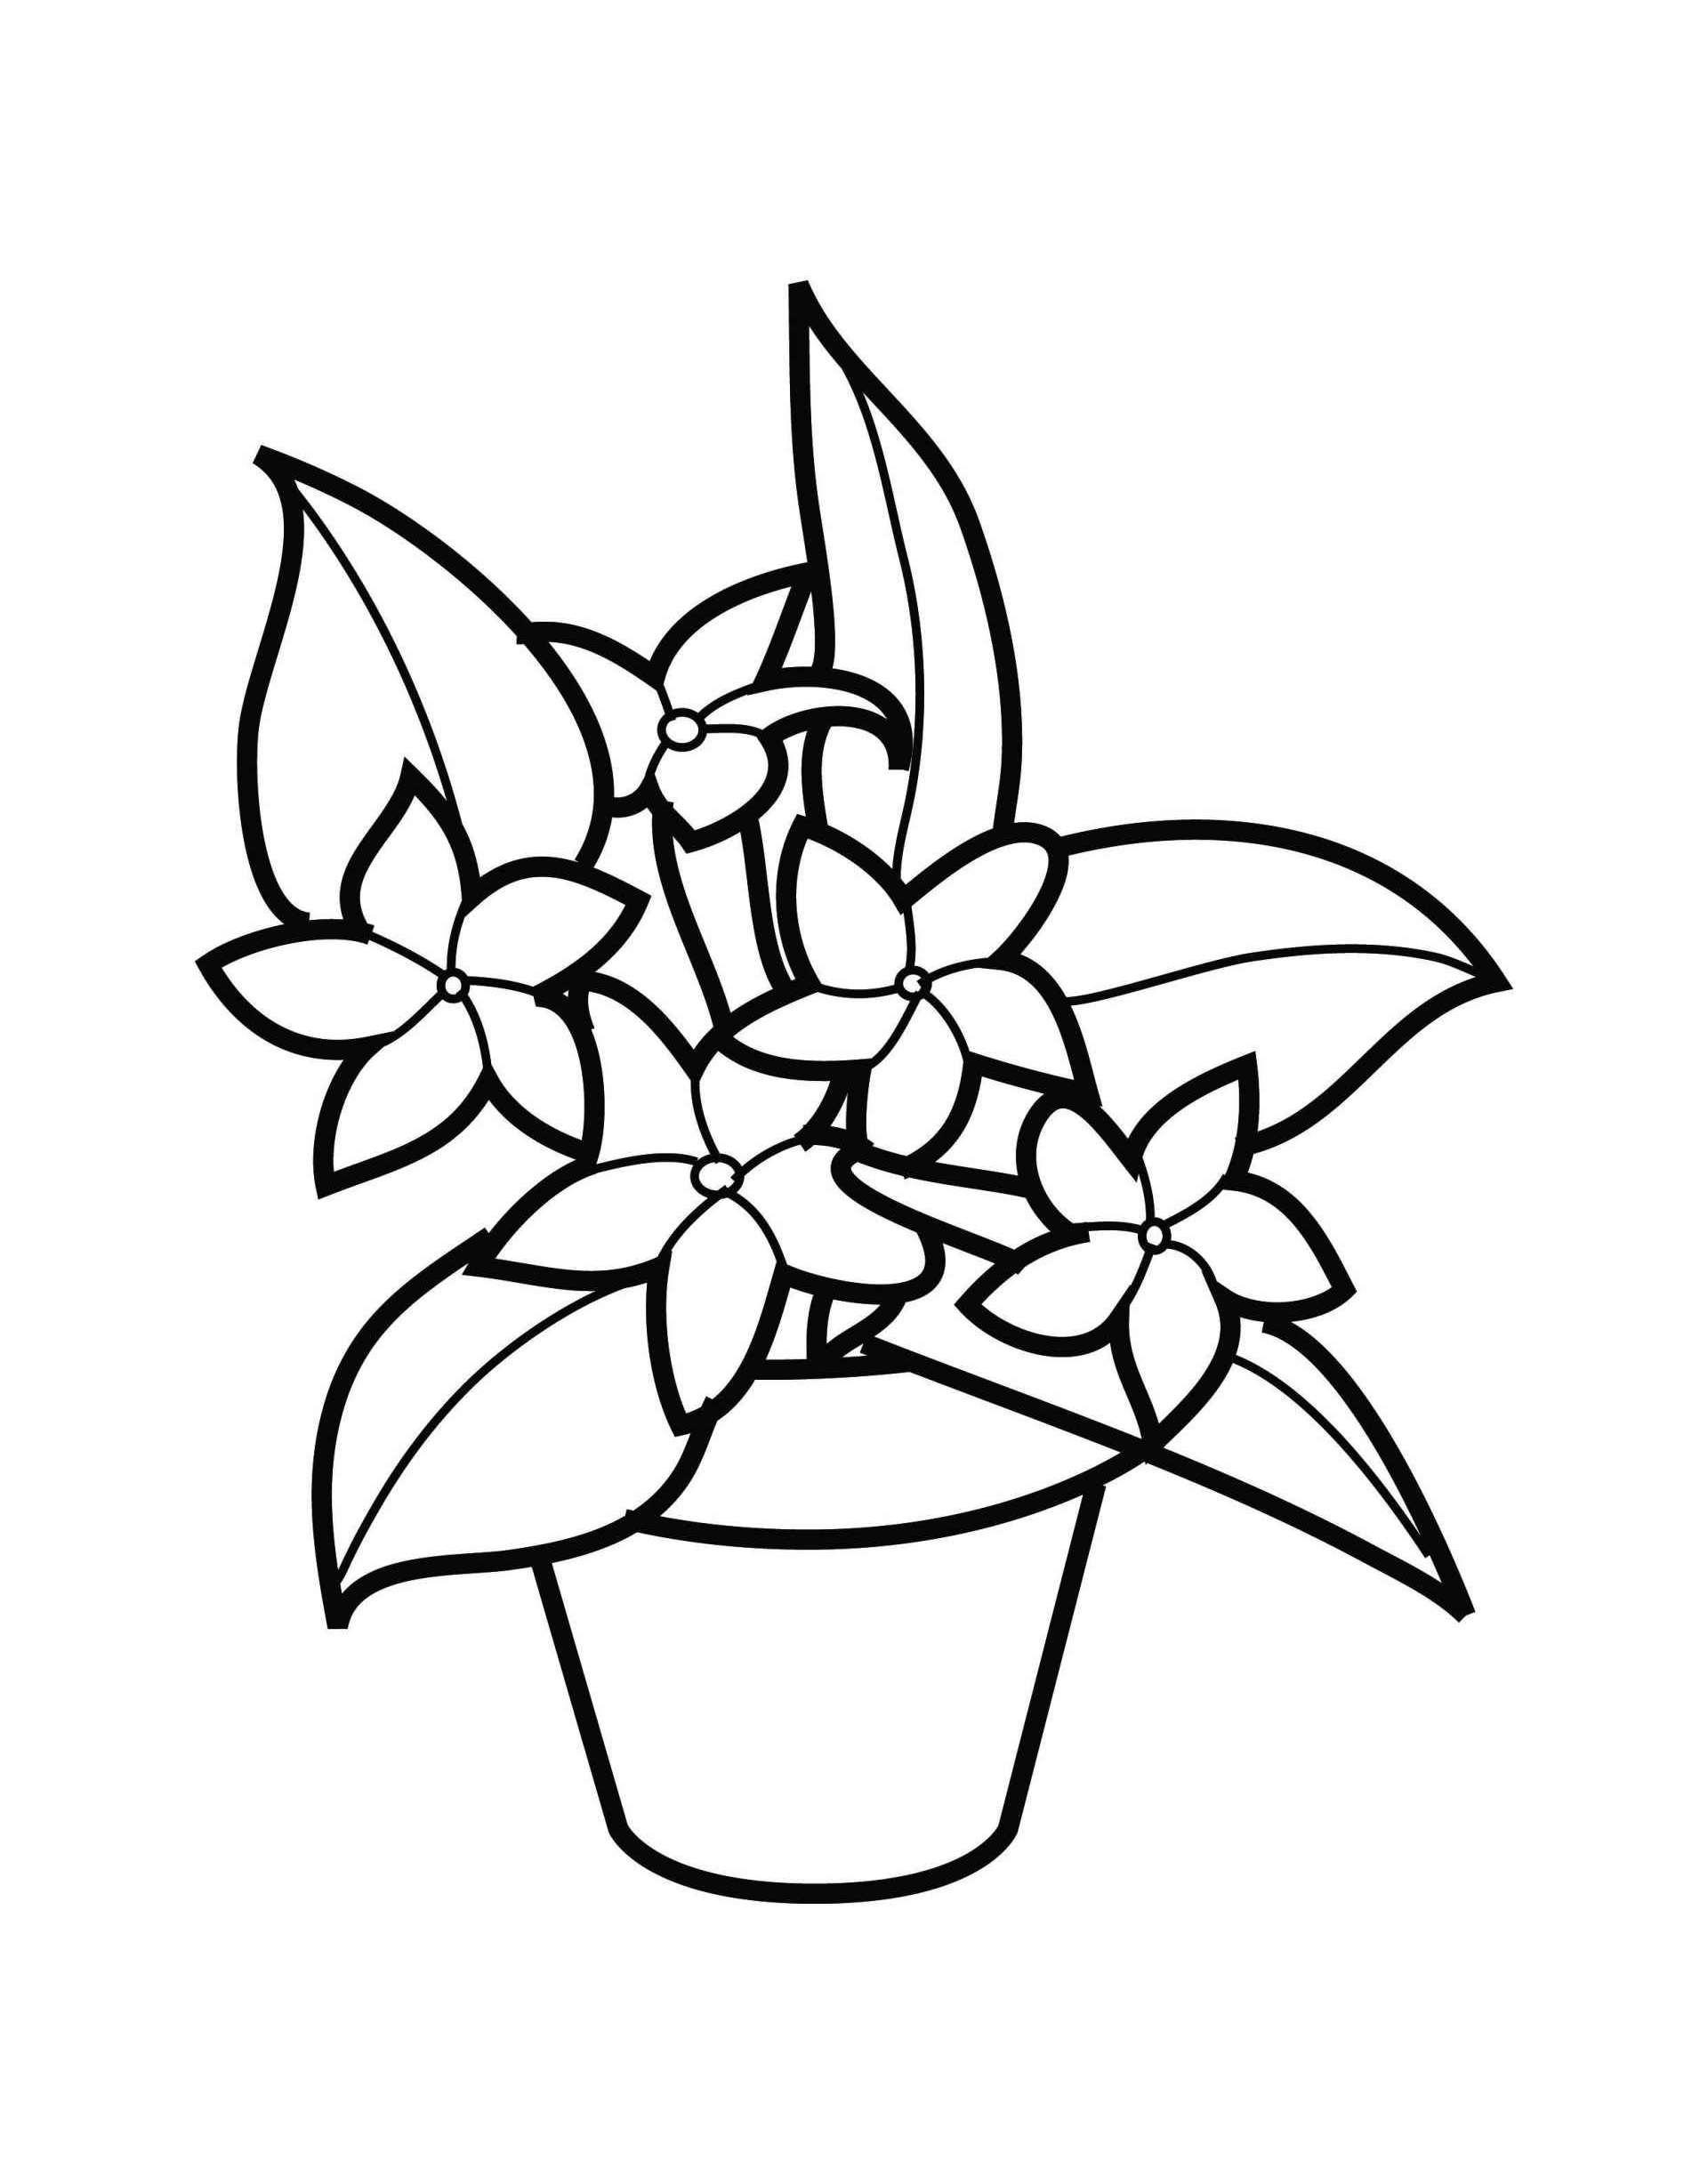 Flower Pot Coloring Pages Best Coloring Pages For Kids